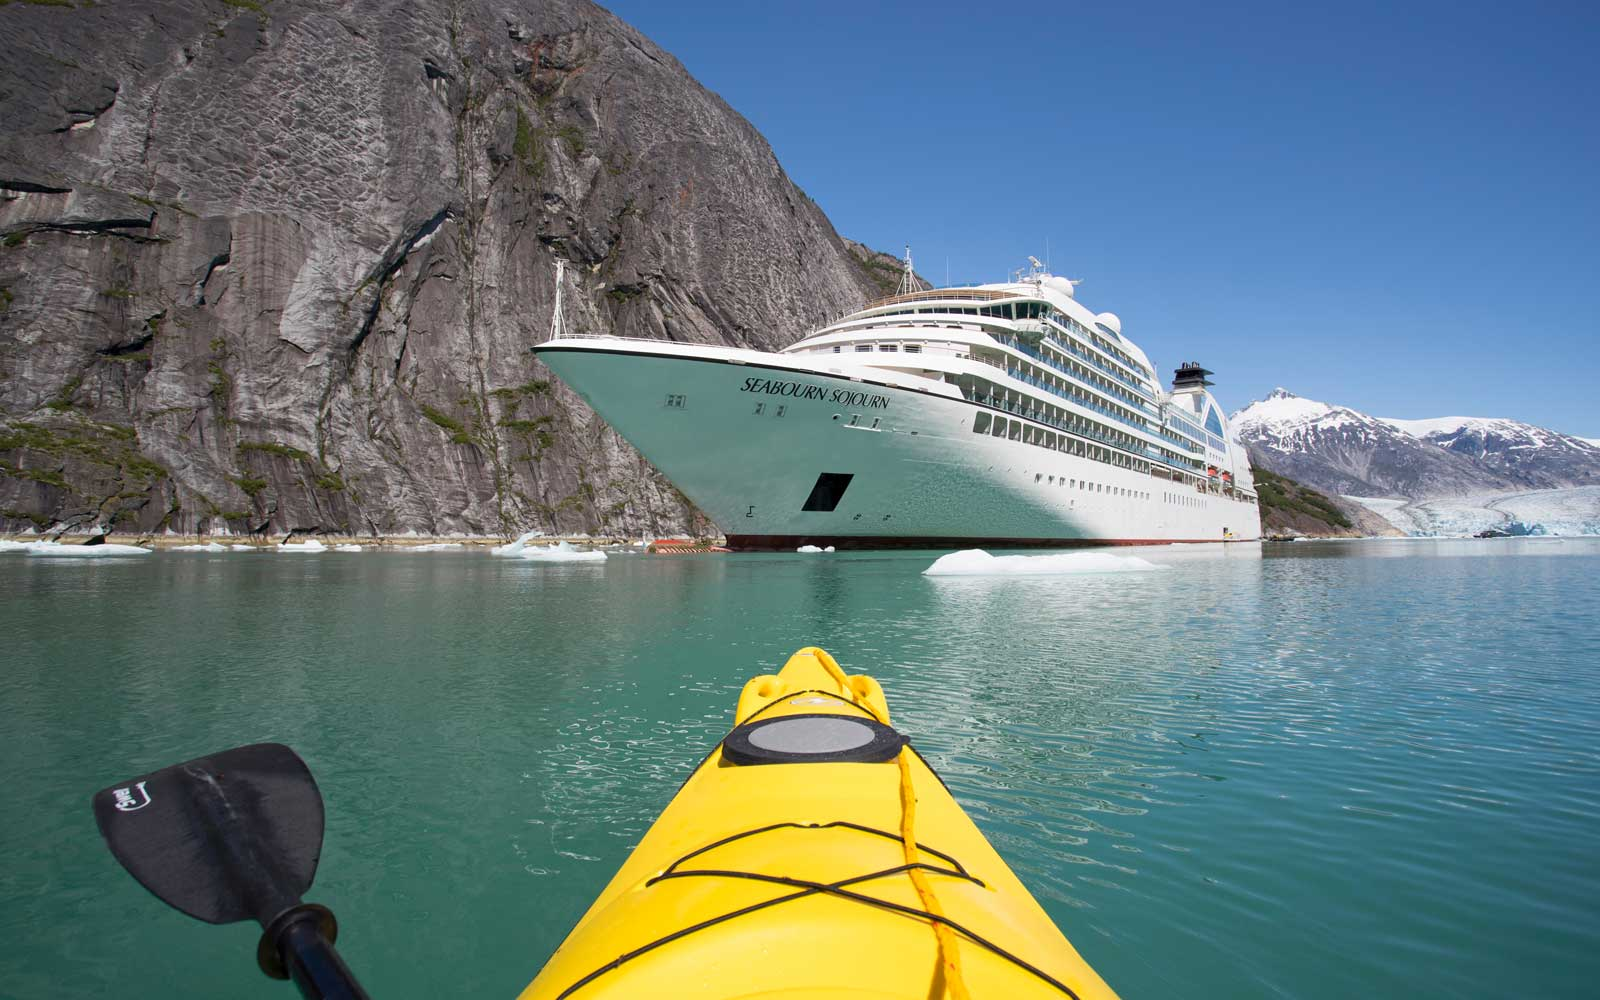 Seabourn's Action-packed Alaska Cruise Lets You Explore the Wilderness by Ship, Kayak, and Dogsled